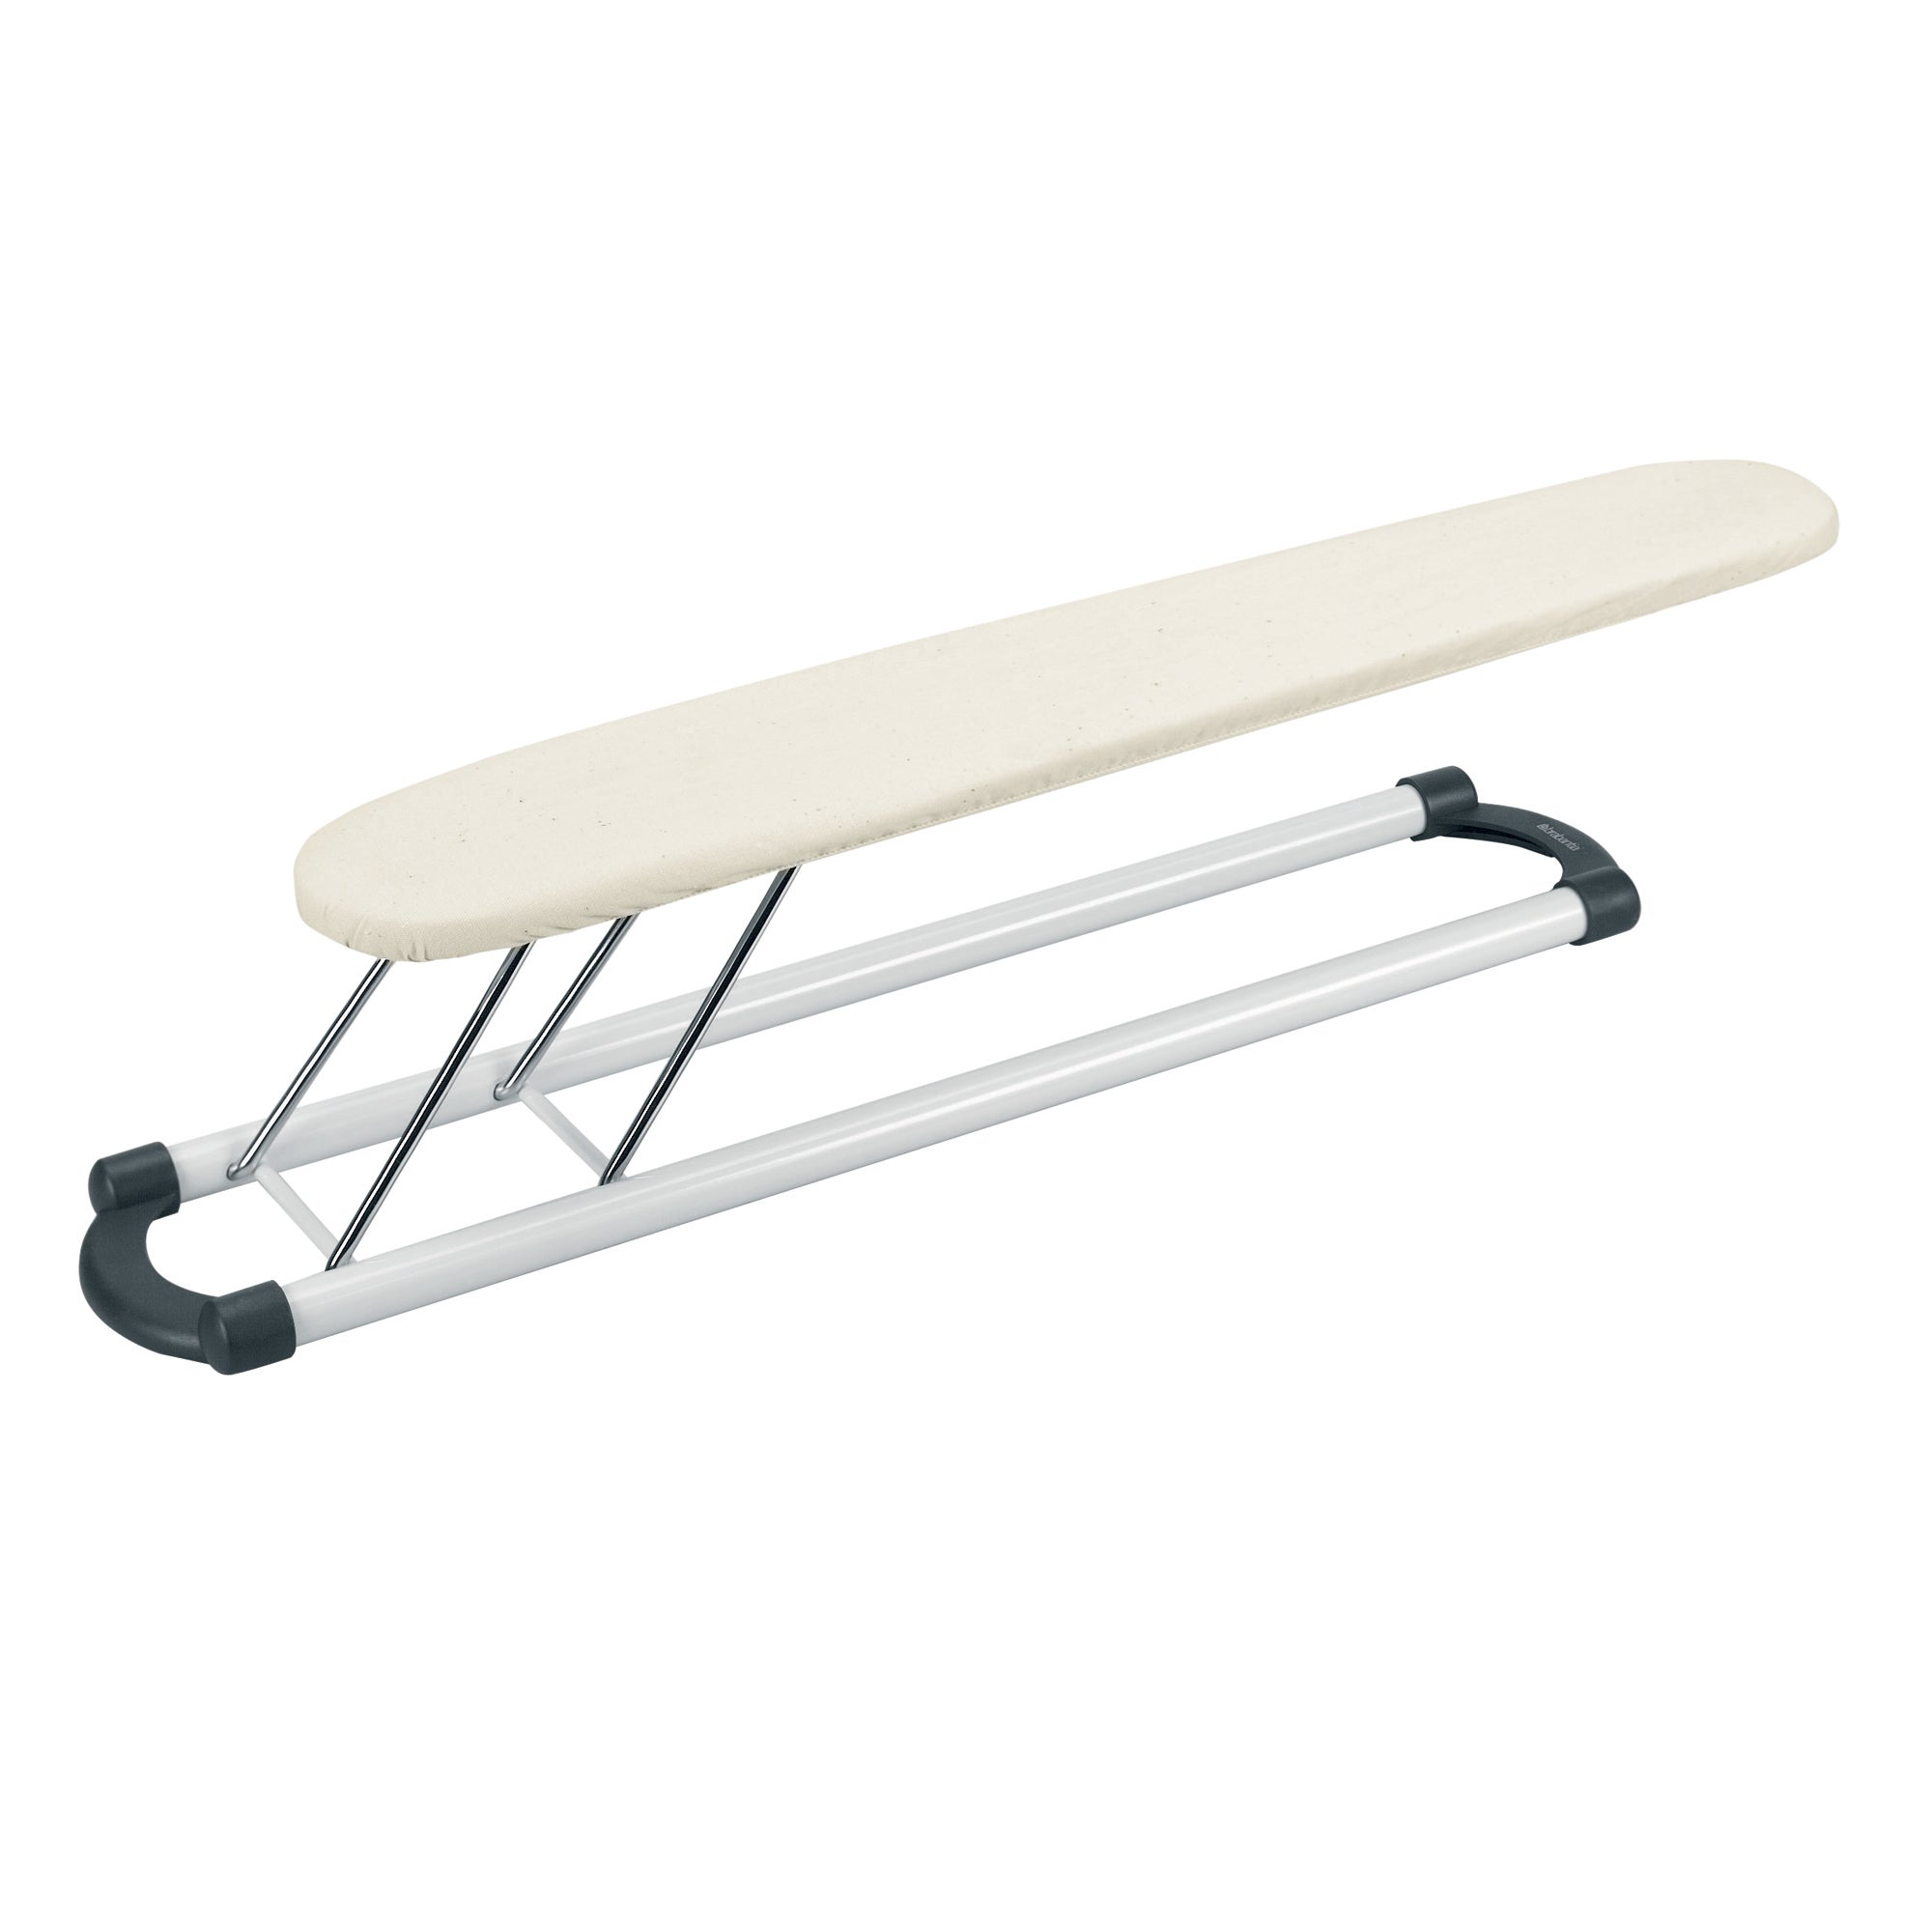 Brabantia Cream Ironing Board Sleeve